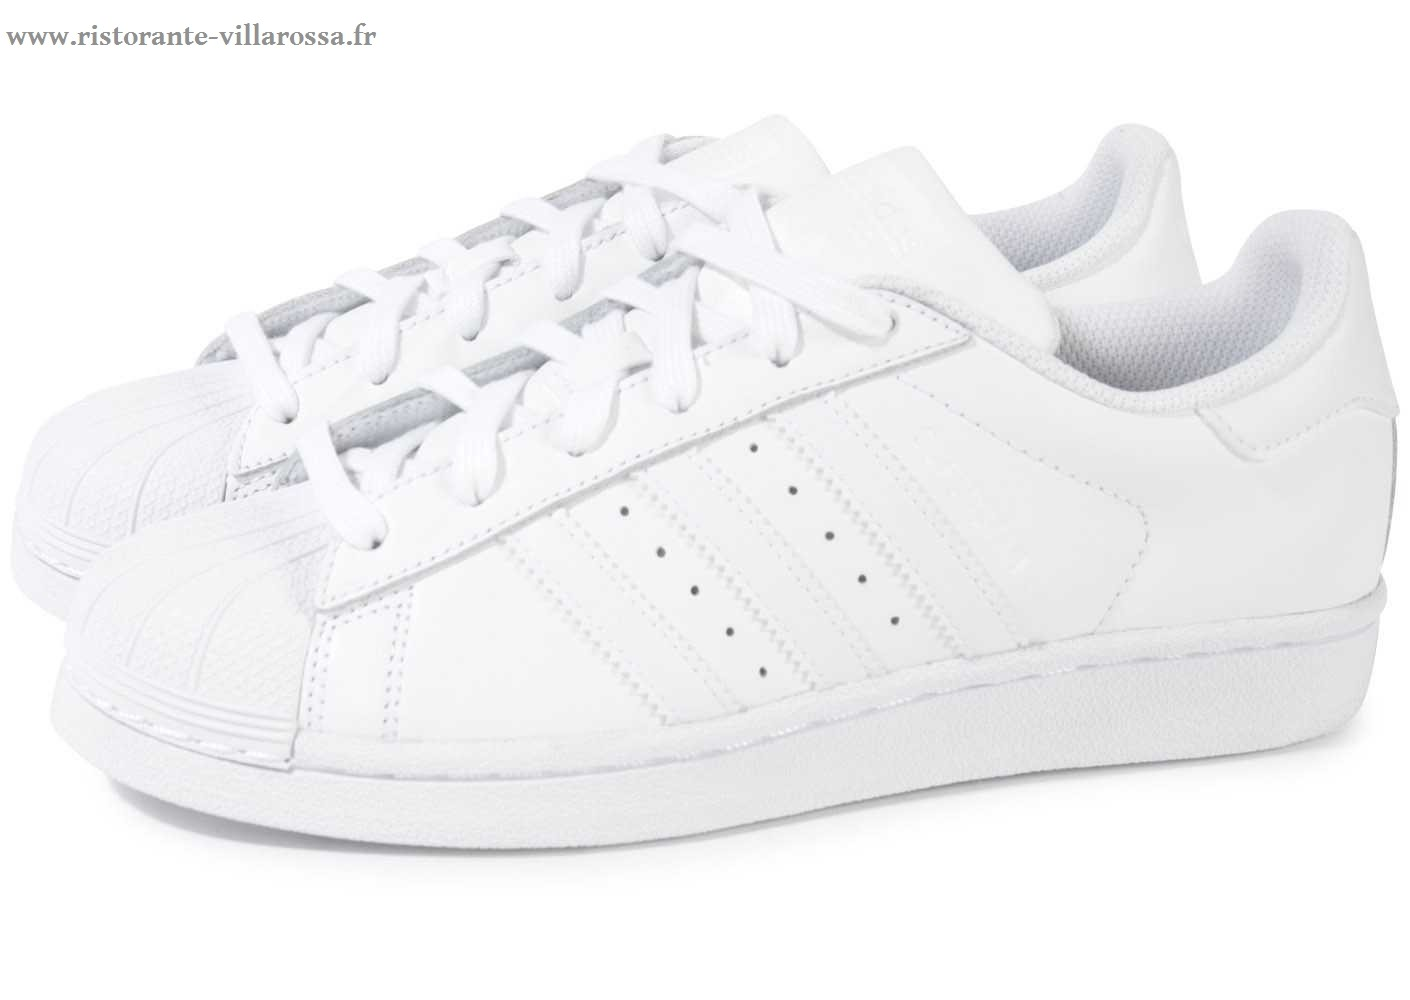 adidas superstar femme blanche Outlet Vente Authentique ...